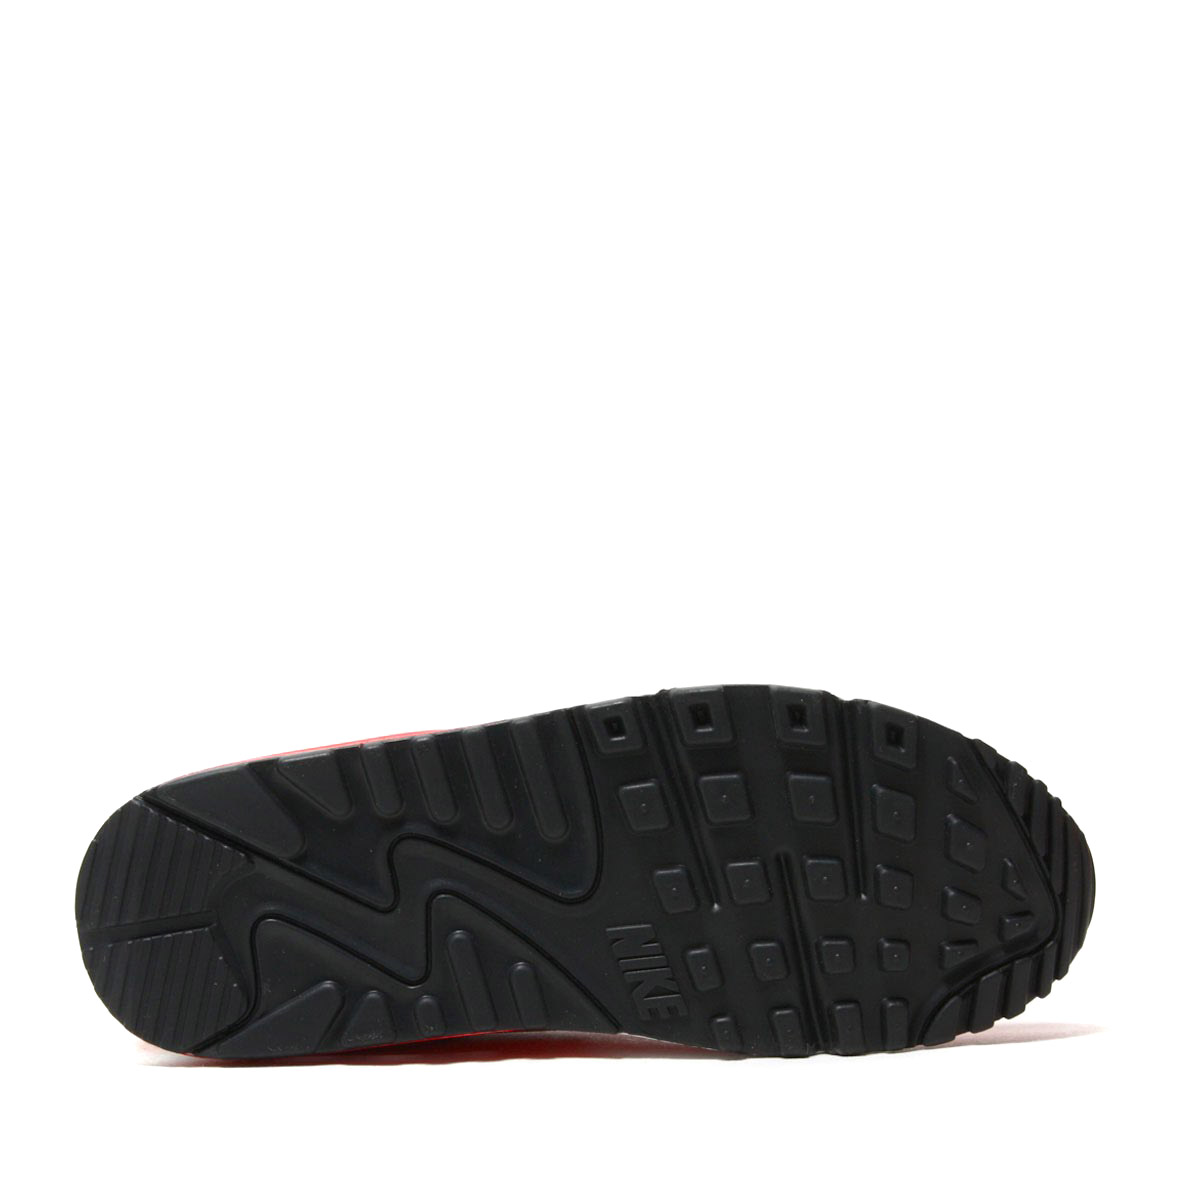 info for 72a6d 959c7 NIKE WMNS AIR MAX 90 (Nike women Air Max 90) SPEED RED WHITE-BLACK 18SP-I